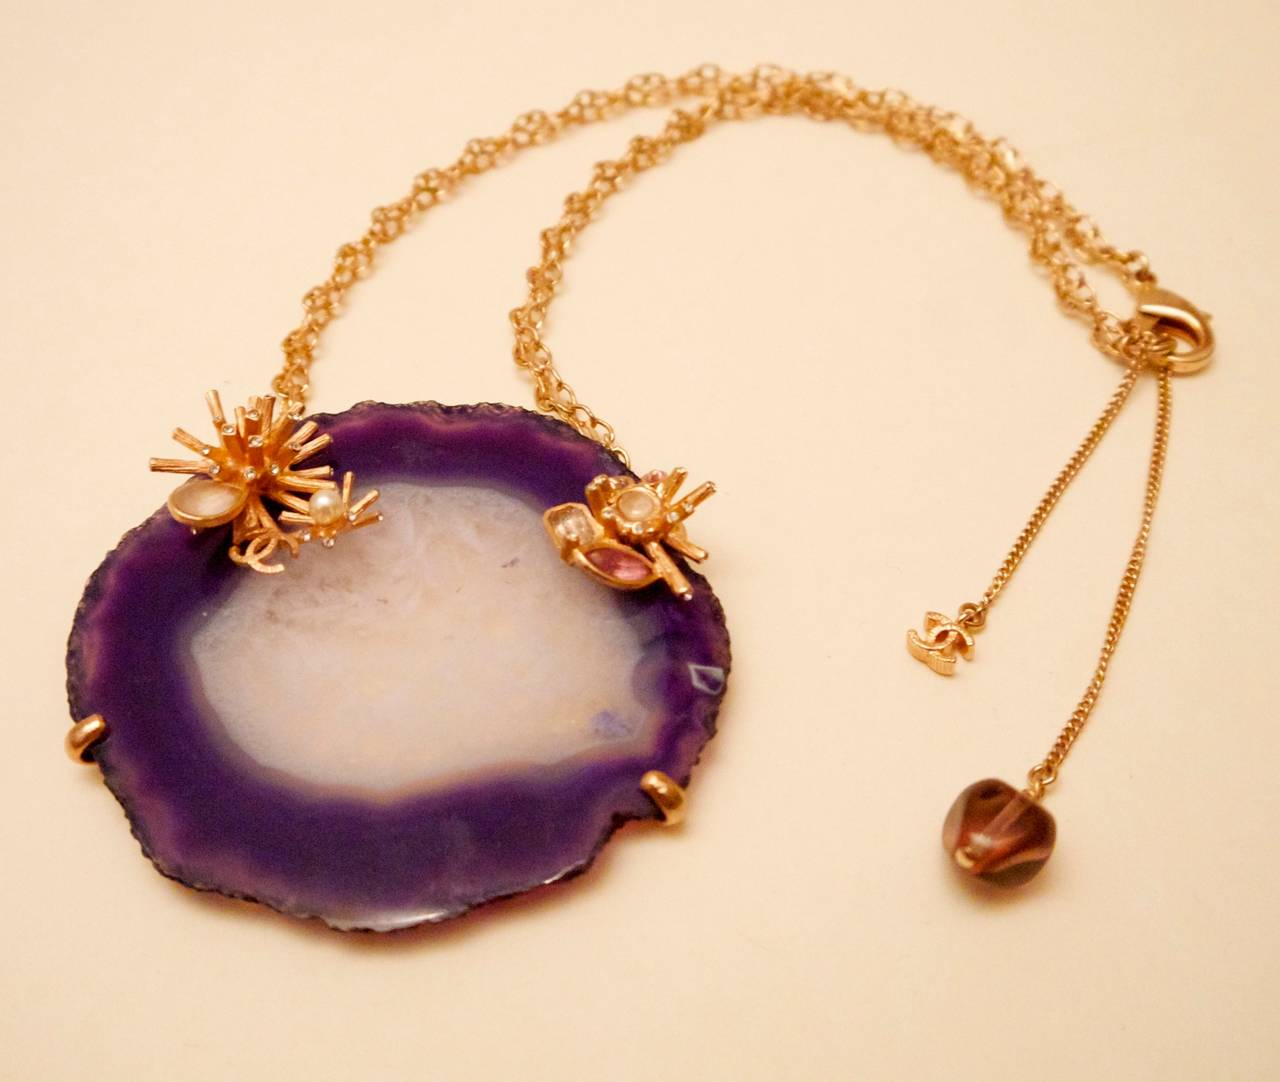 Chanel Purple and White Agate Cross Section Couture Necklace 5